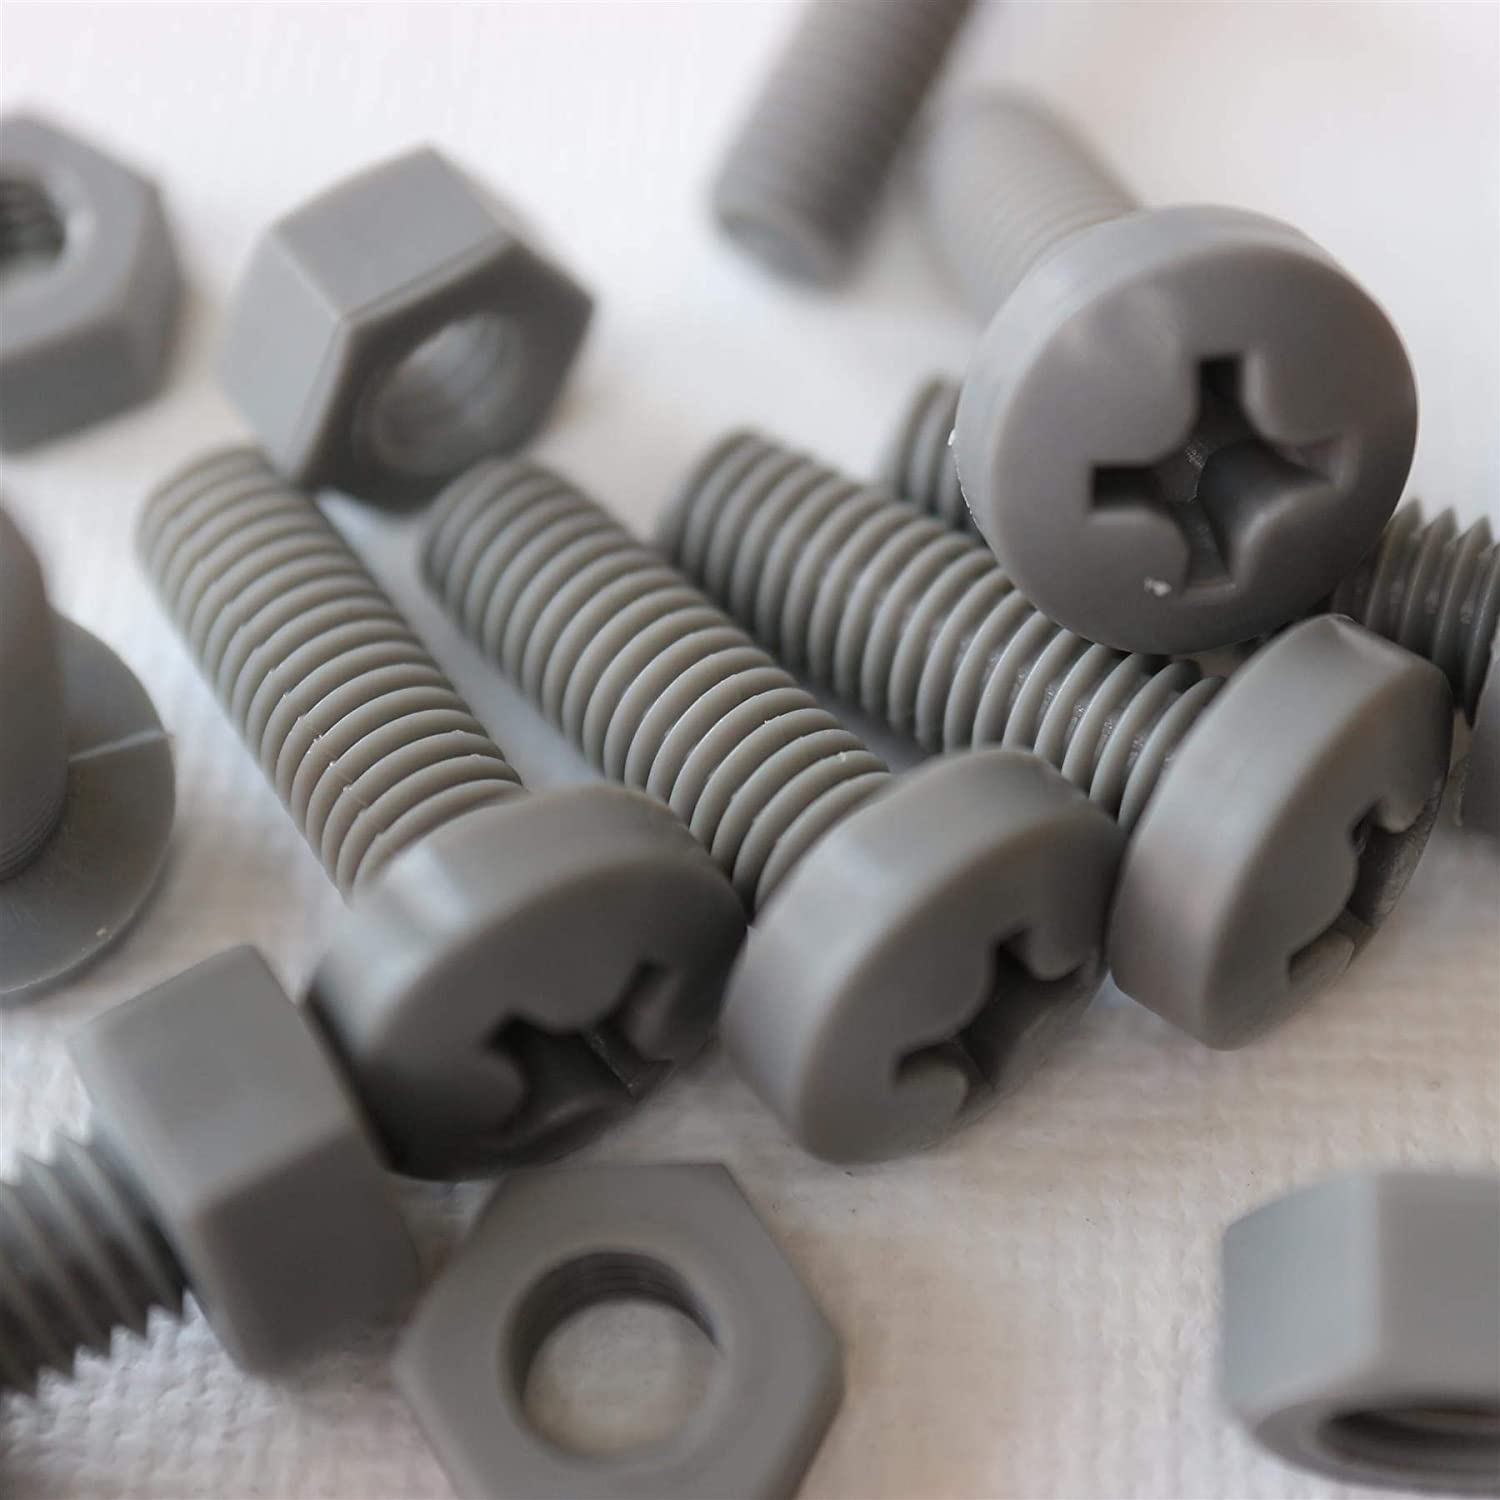 20 x Grey Philips Pan Head Screws Polypropylene PP Plastic Nuts and Bolts Washers Anti-Corrosion Water Resistant Gray Acrylic Chemical Resistant M6 x 20mm Electrical Insulator